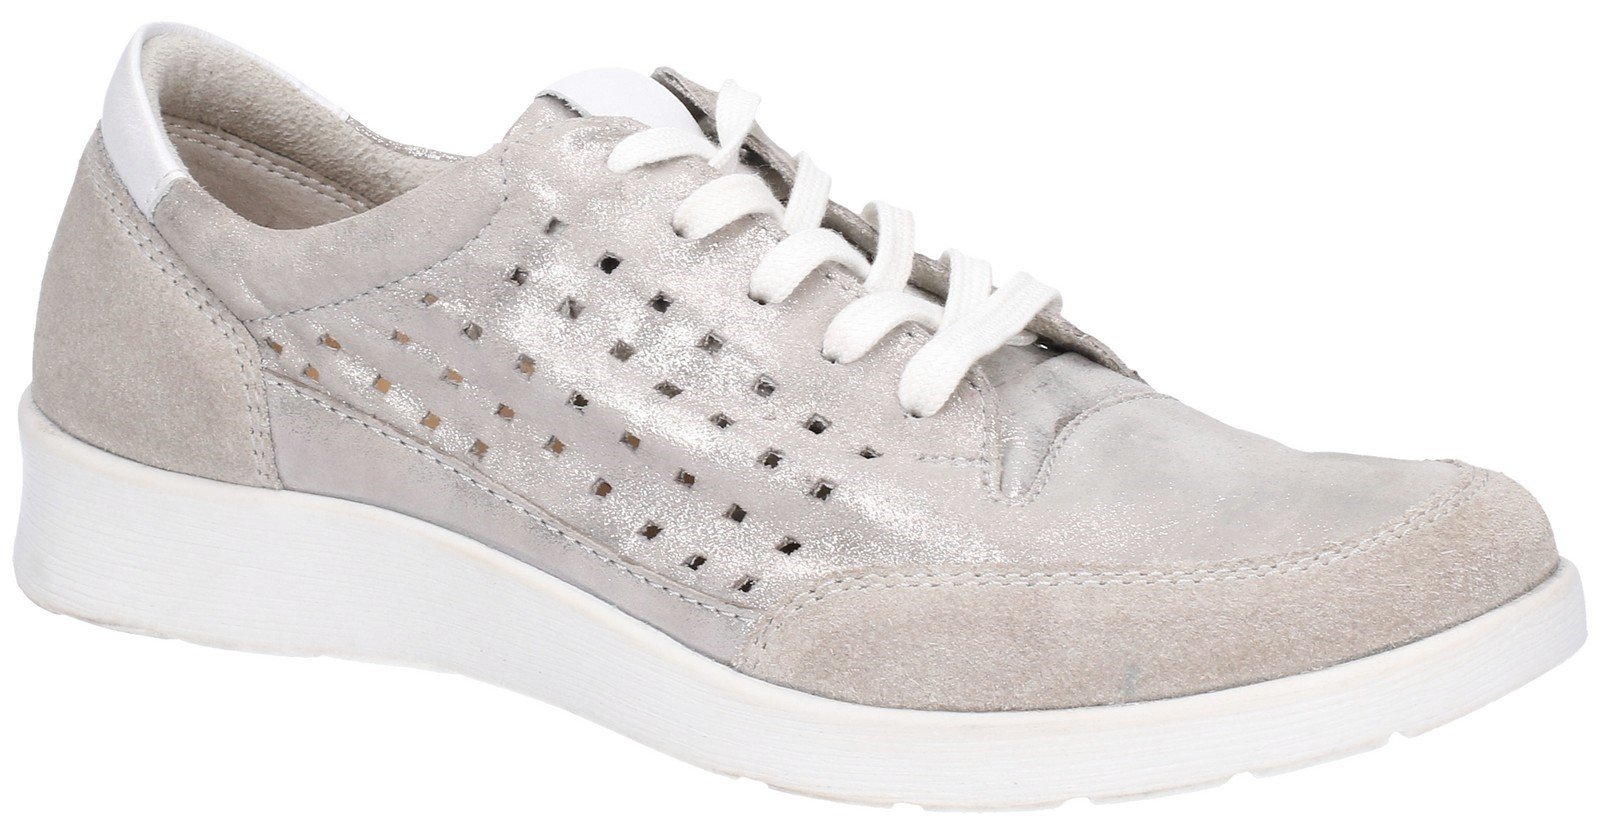 Hush Puppies Women's Molly Lace Up Shoe Various Colours 28408 - Silver 3